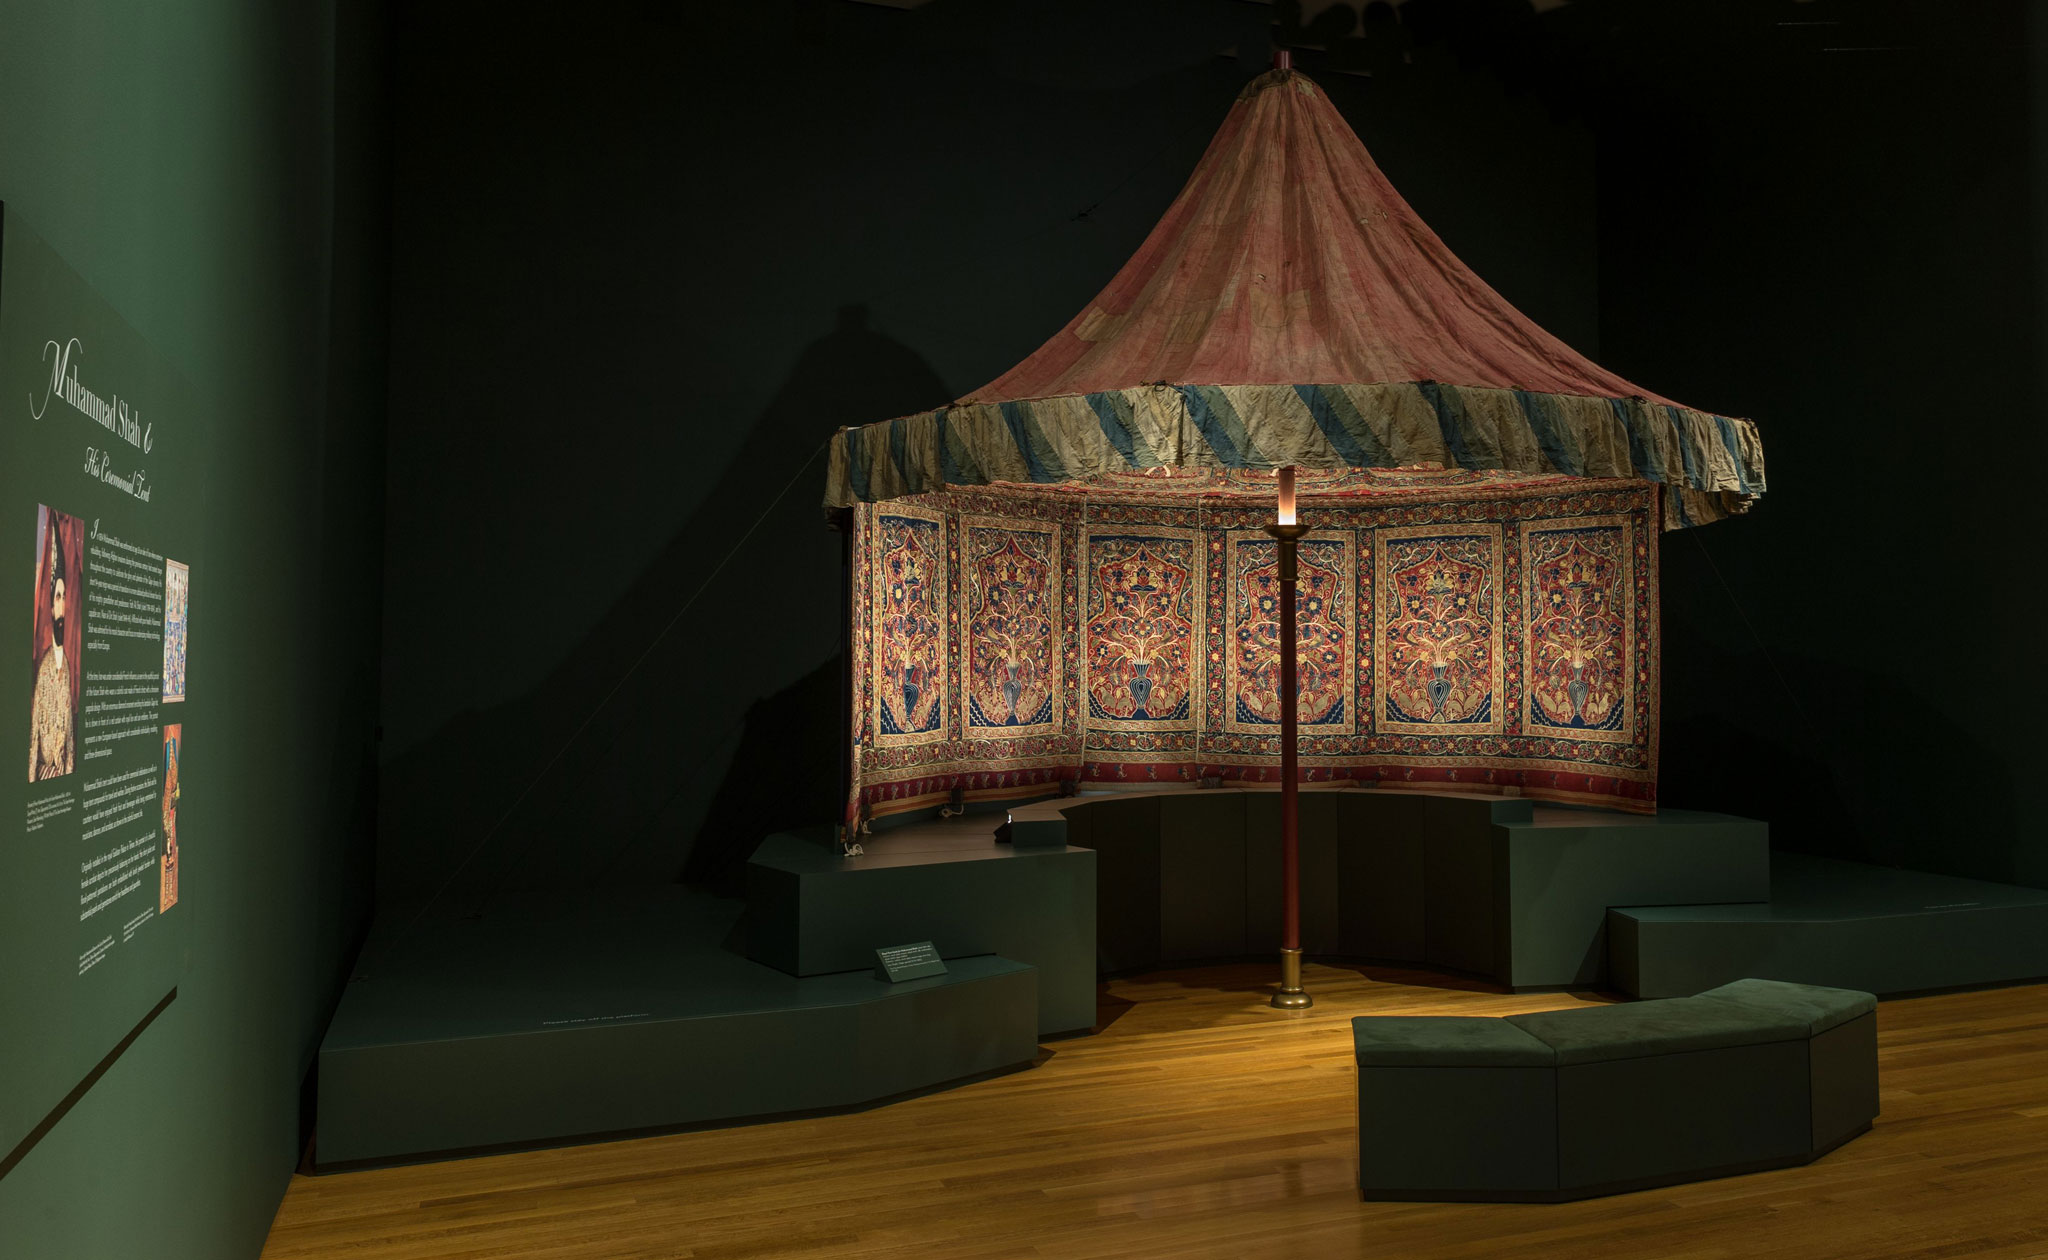 Muhammad Shah's Royal Persian Tent - Cleveland Museum of Art - Overview of Installation | Image courtesy of The Cleveland Museum of Art